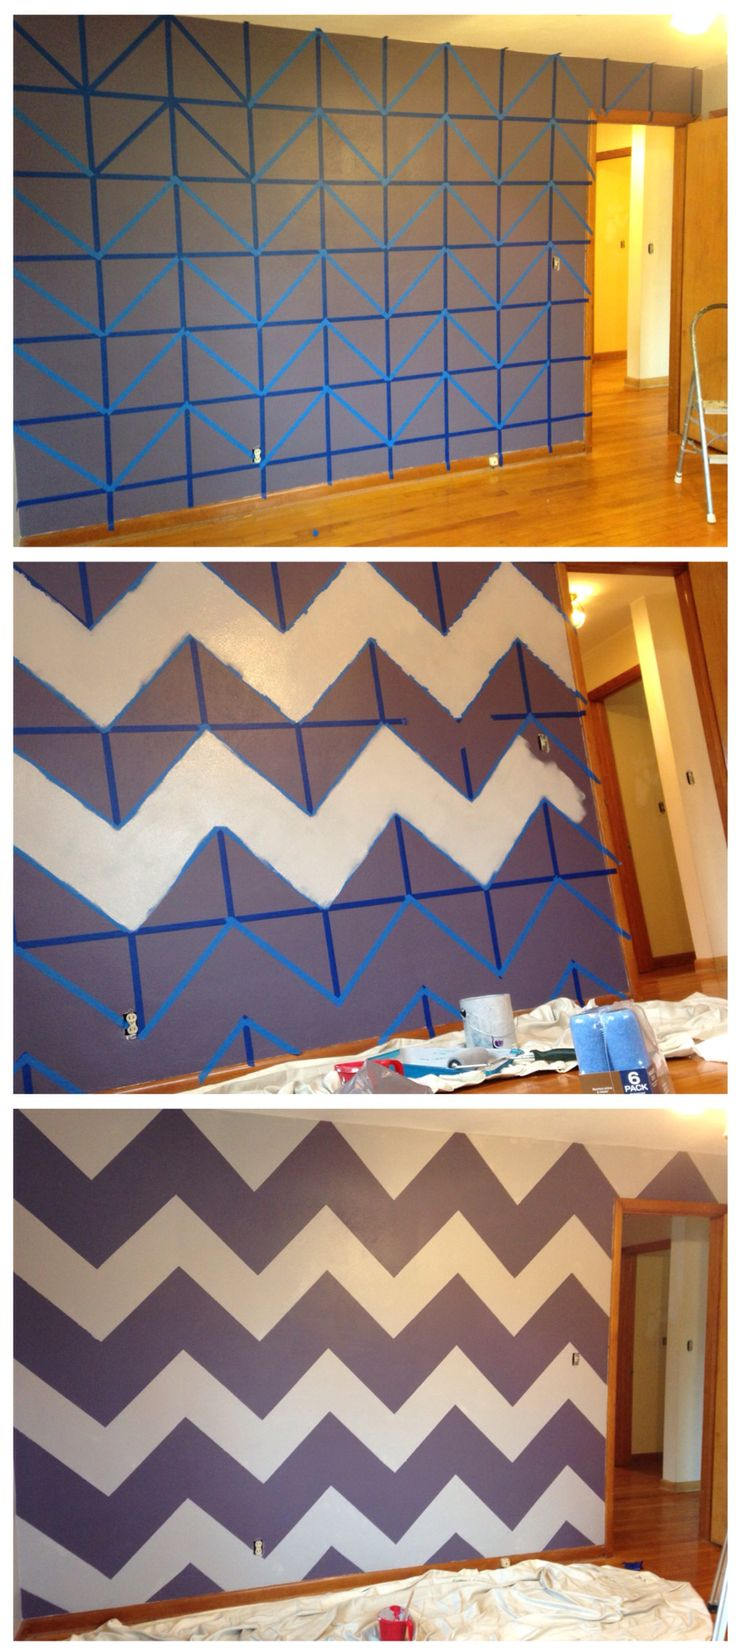 How to chevron a wall: 1.Tape a grid on the wall 2. Follow the pattern and in each square tape it off to create 2 triangles  3. Remove the grid tape in every other chevron line 4. Paint within the tape to create the chevron pattern 5. Remove tape  Annnnnd FINISHED :D